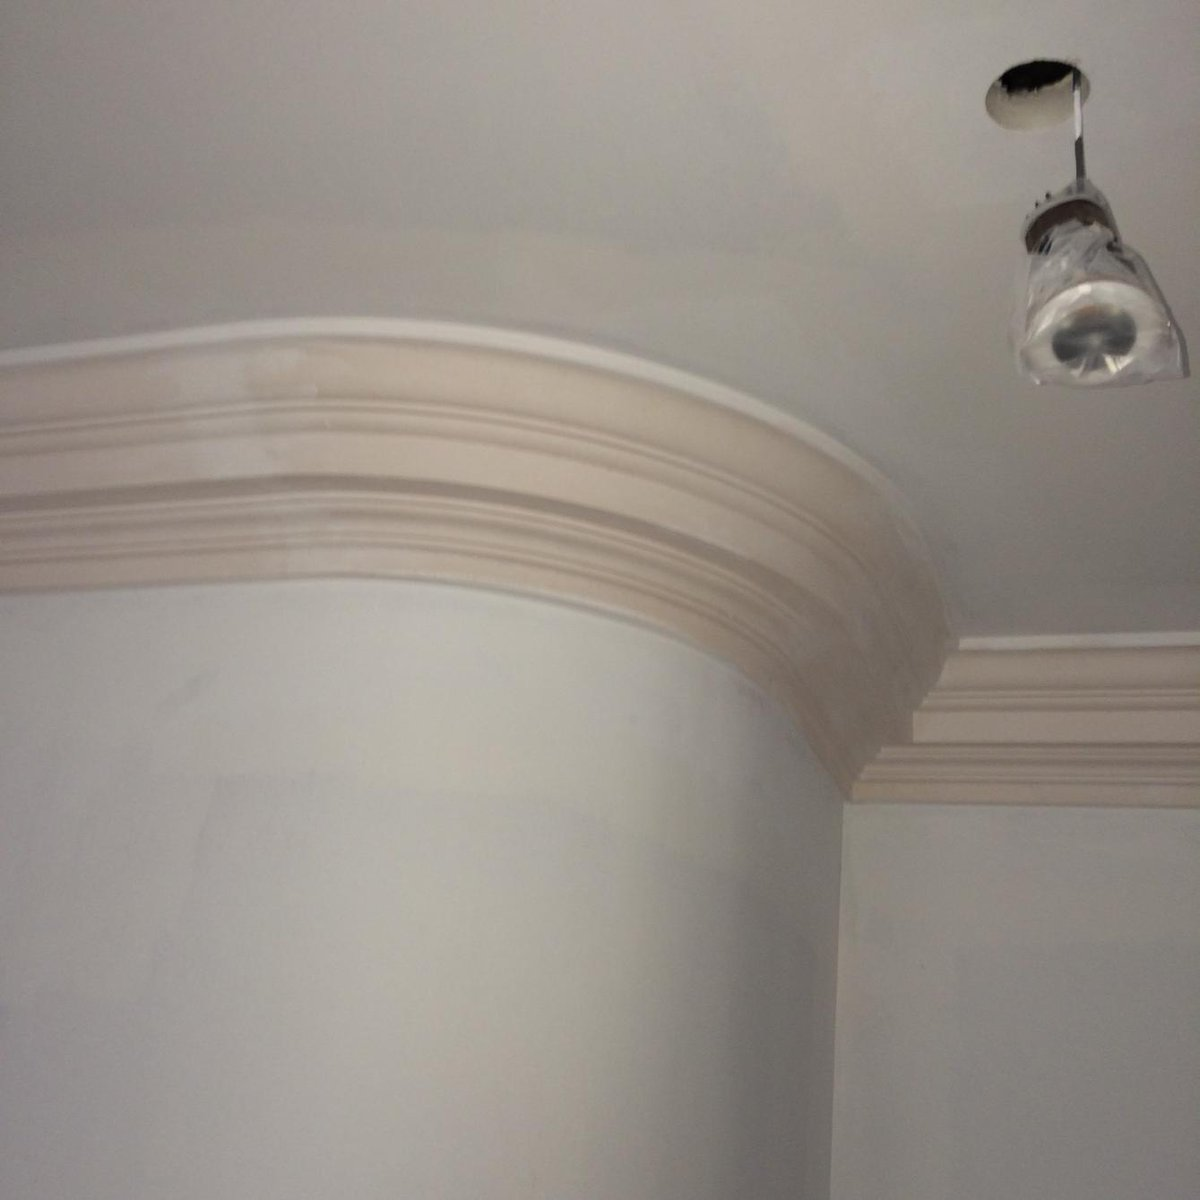 Cornice Designs On Twitter All Plaster Cornice Is Available Curved To Any Radii Simple Process Of You Know How Our Georgian Cornice Gsr200 Http T Co Dnolxrqlzf